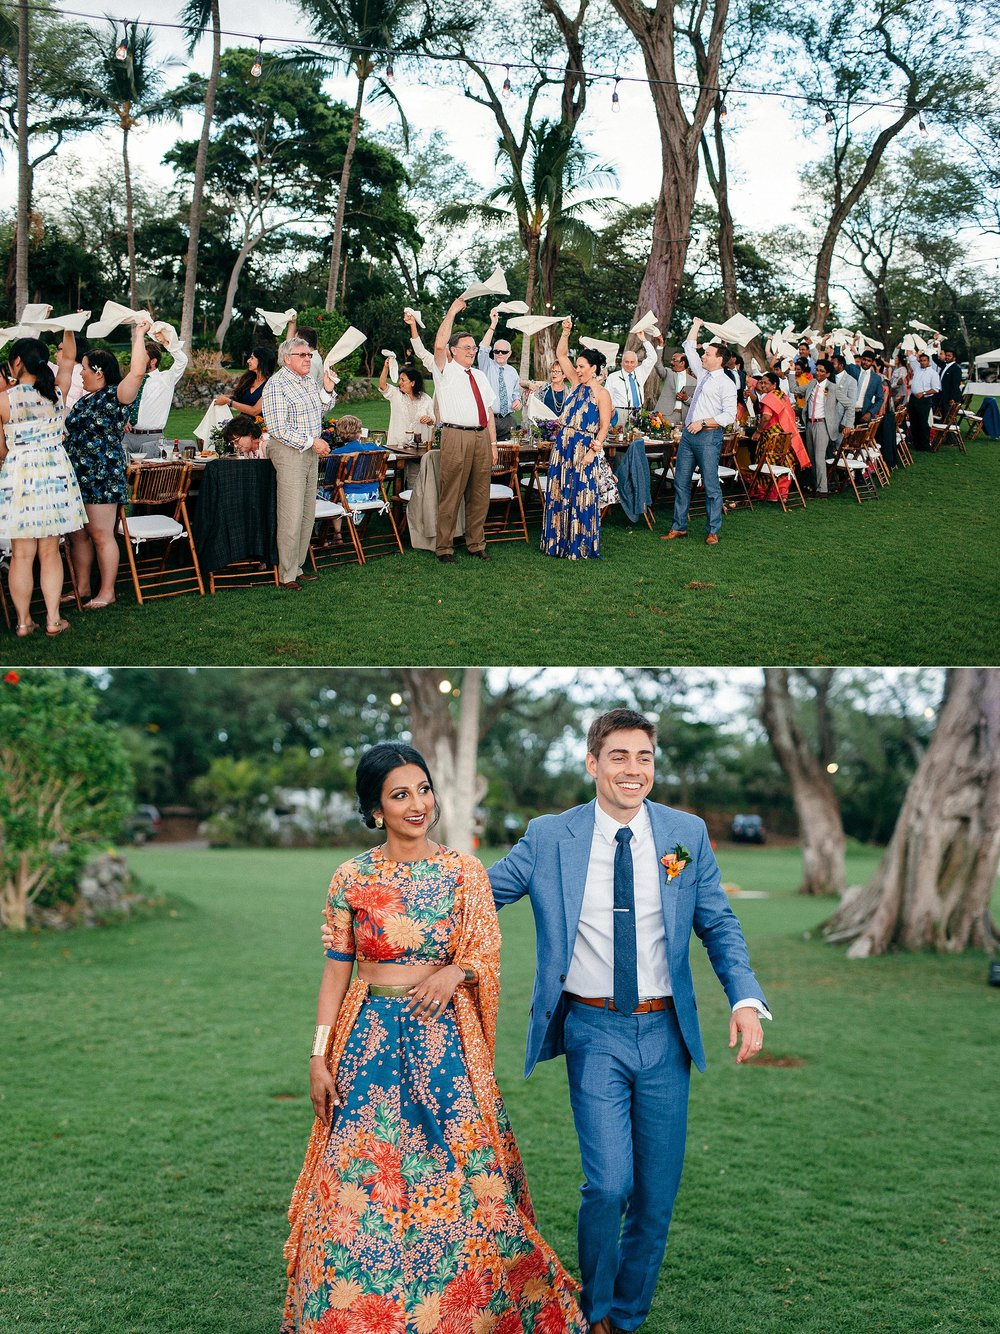 Maui-Hawaii-Indian-Wedding-at Sugarman-Estate-Floral-Dress-and-Colorful-Details_0029.jpg